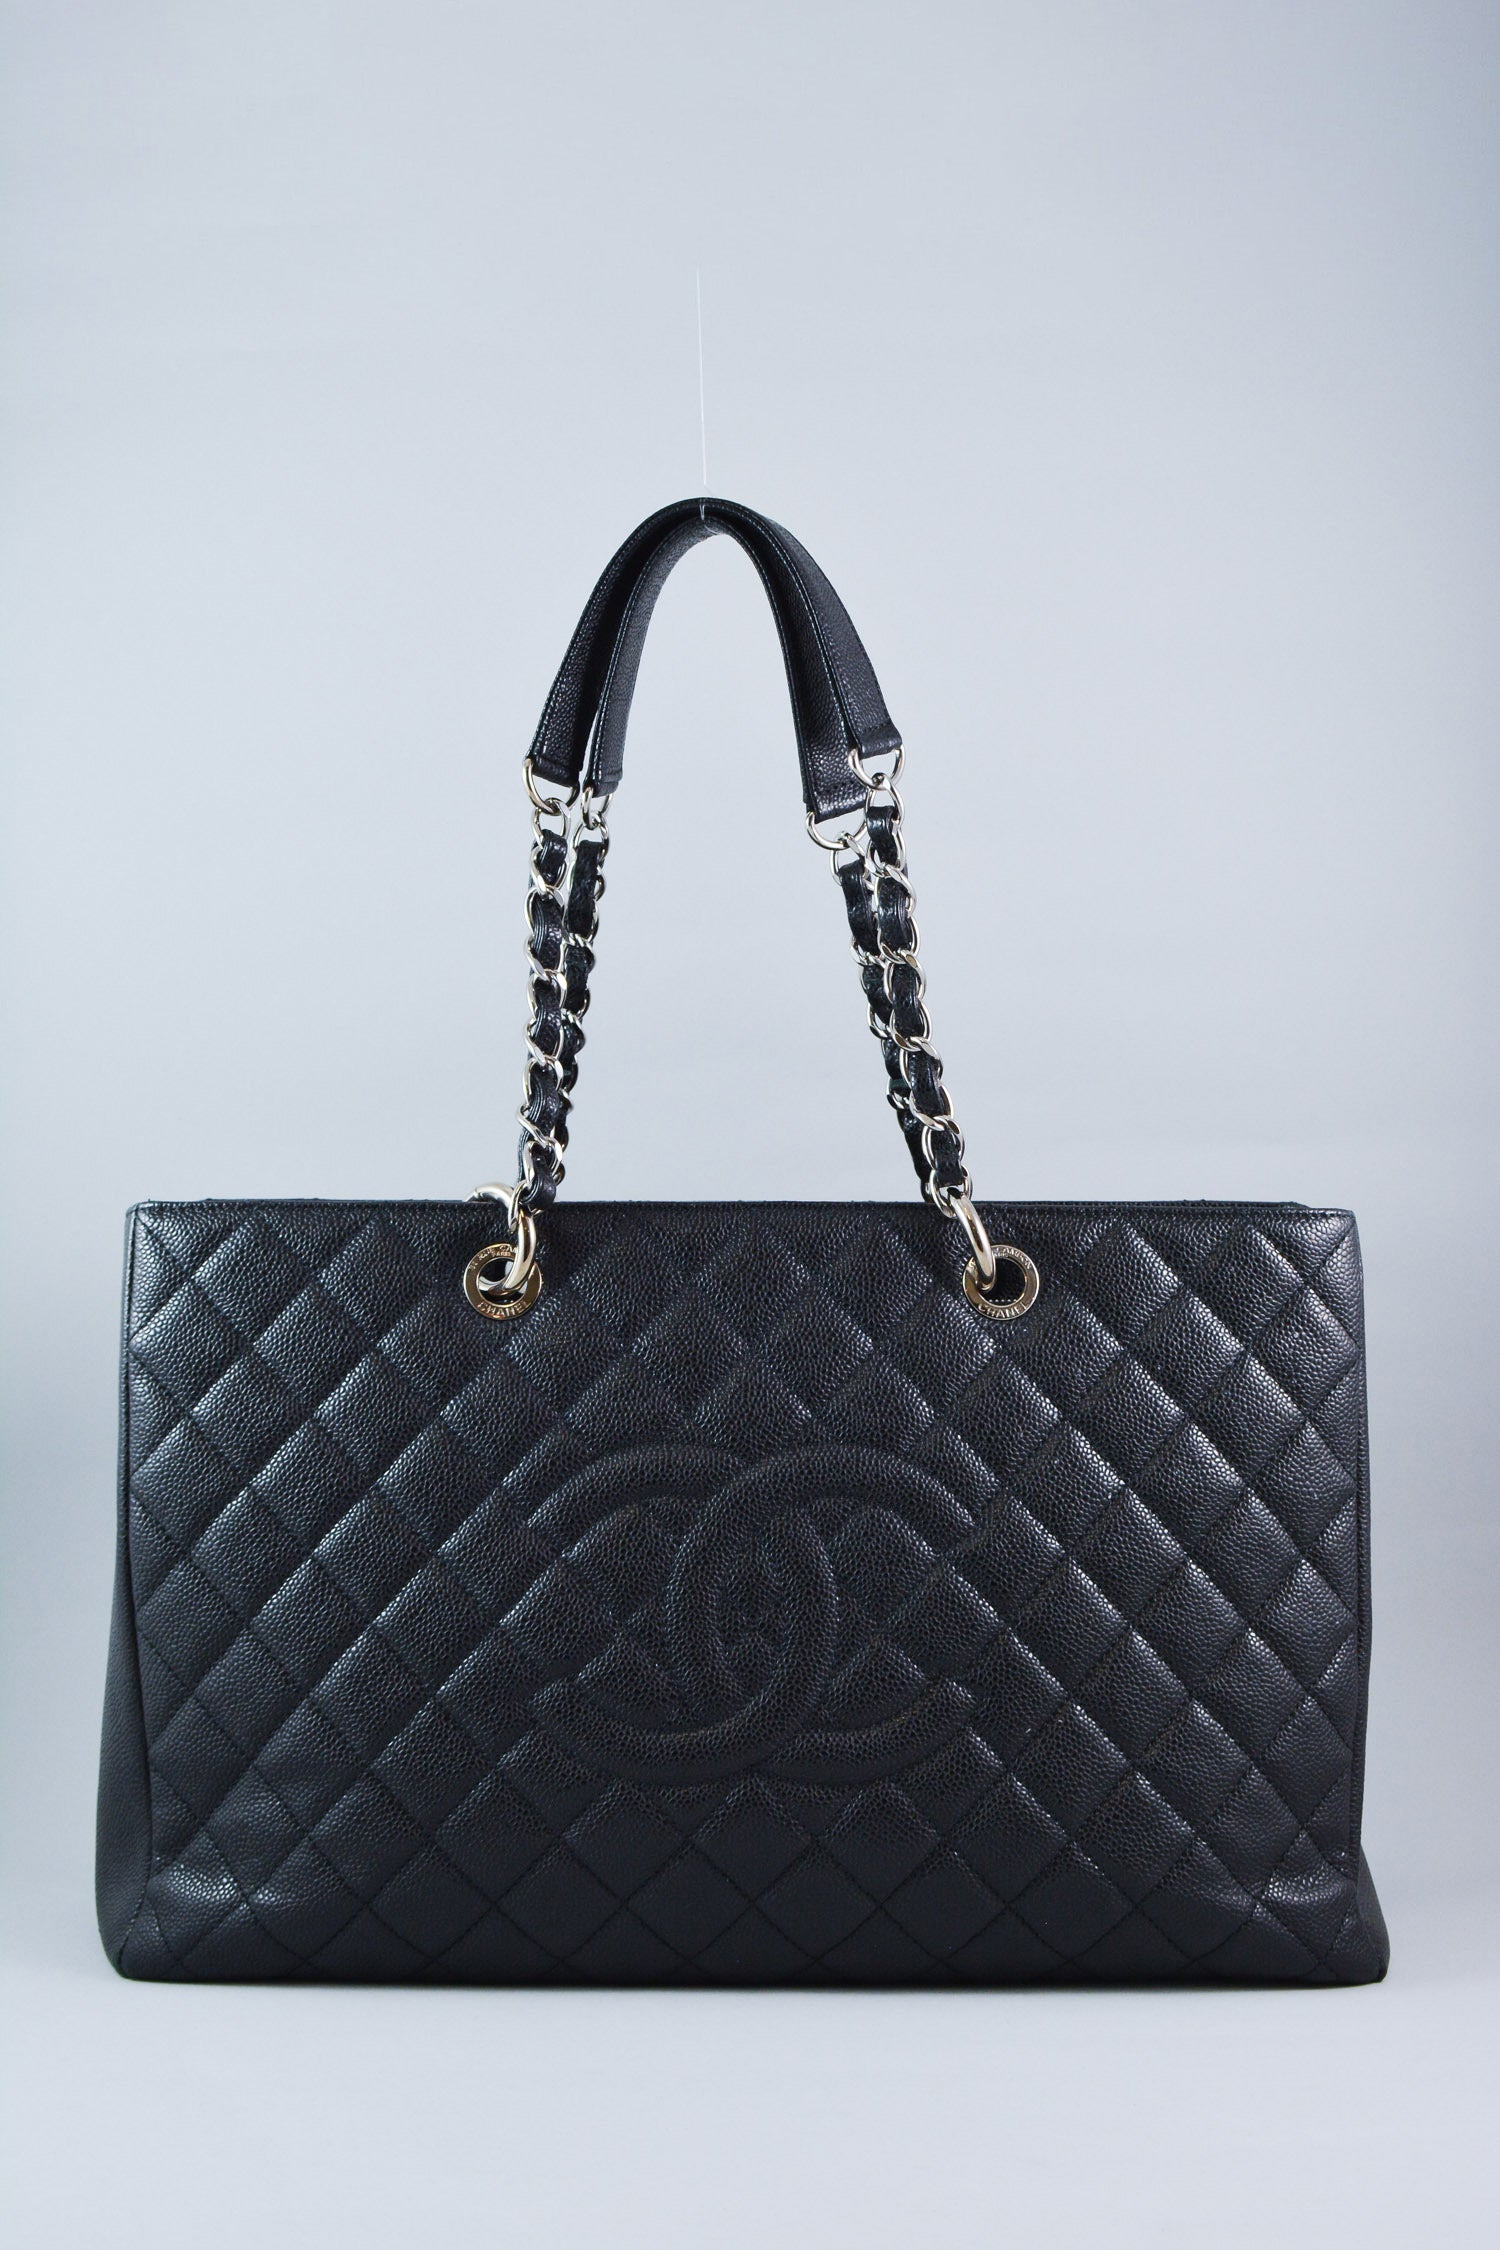 Chanel Black Caviar Grand Shopping XL Tote